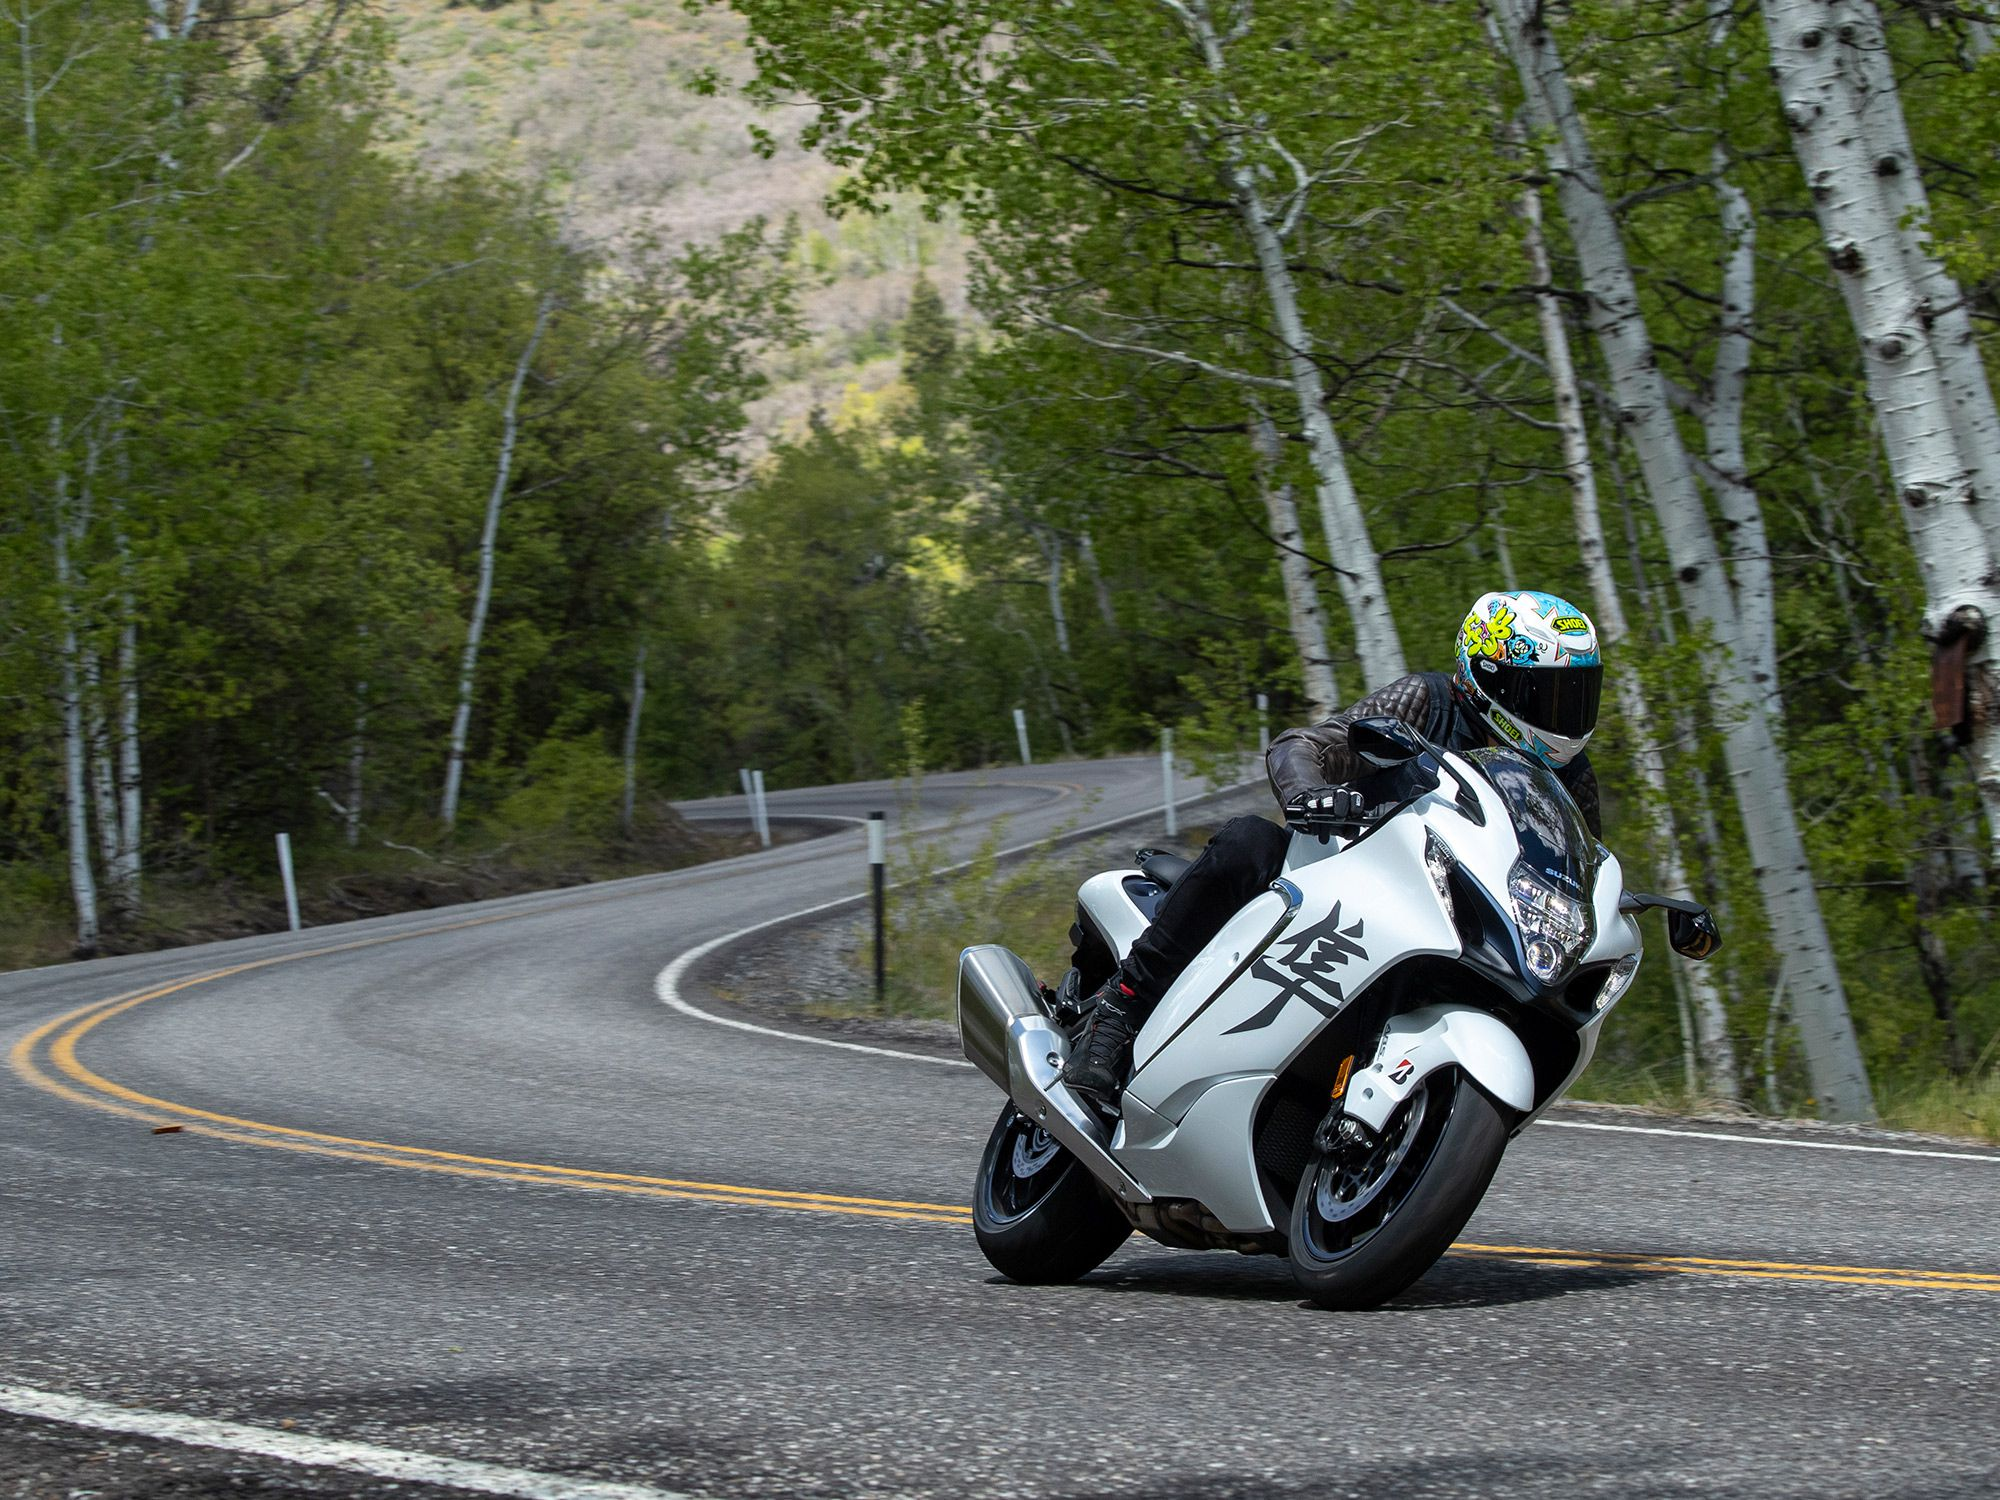 We're always impressed by how well Suzuki's Hayabusa handles for a nearly 600-pound sportbike. Its handling is even more effortless for 2022.